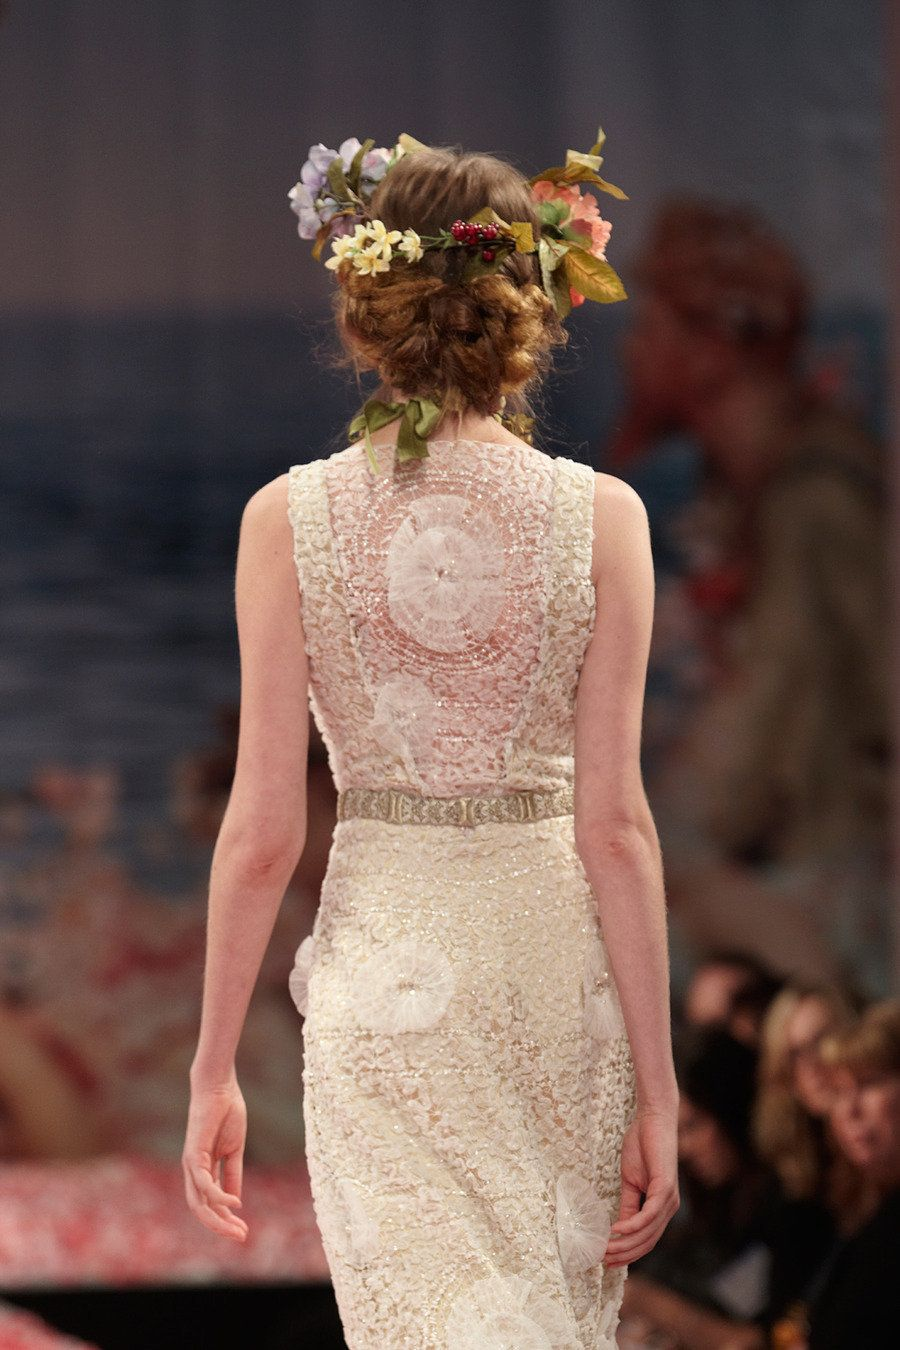 Claire Pettibone Earthly Paradise + Petal Garden GIVEAWAY!